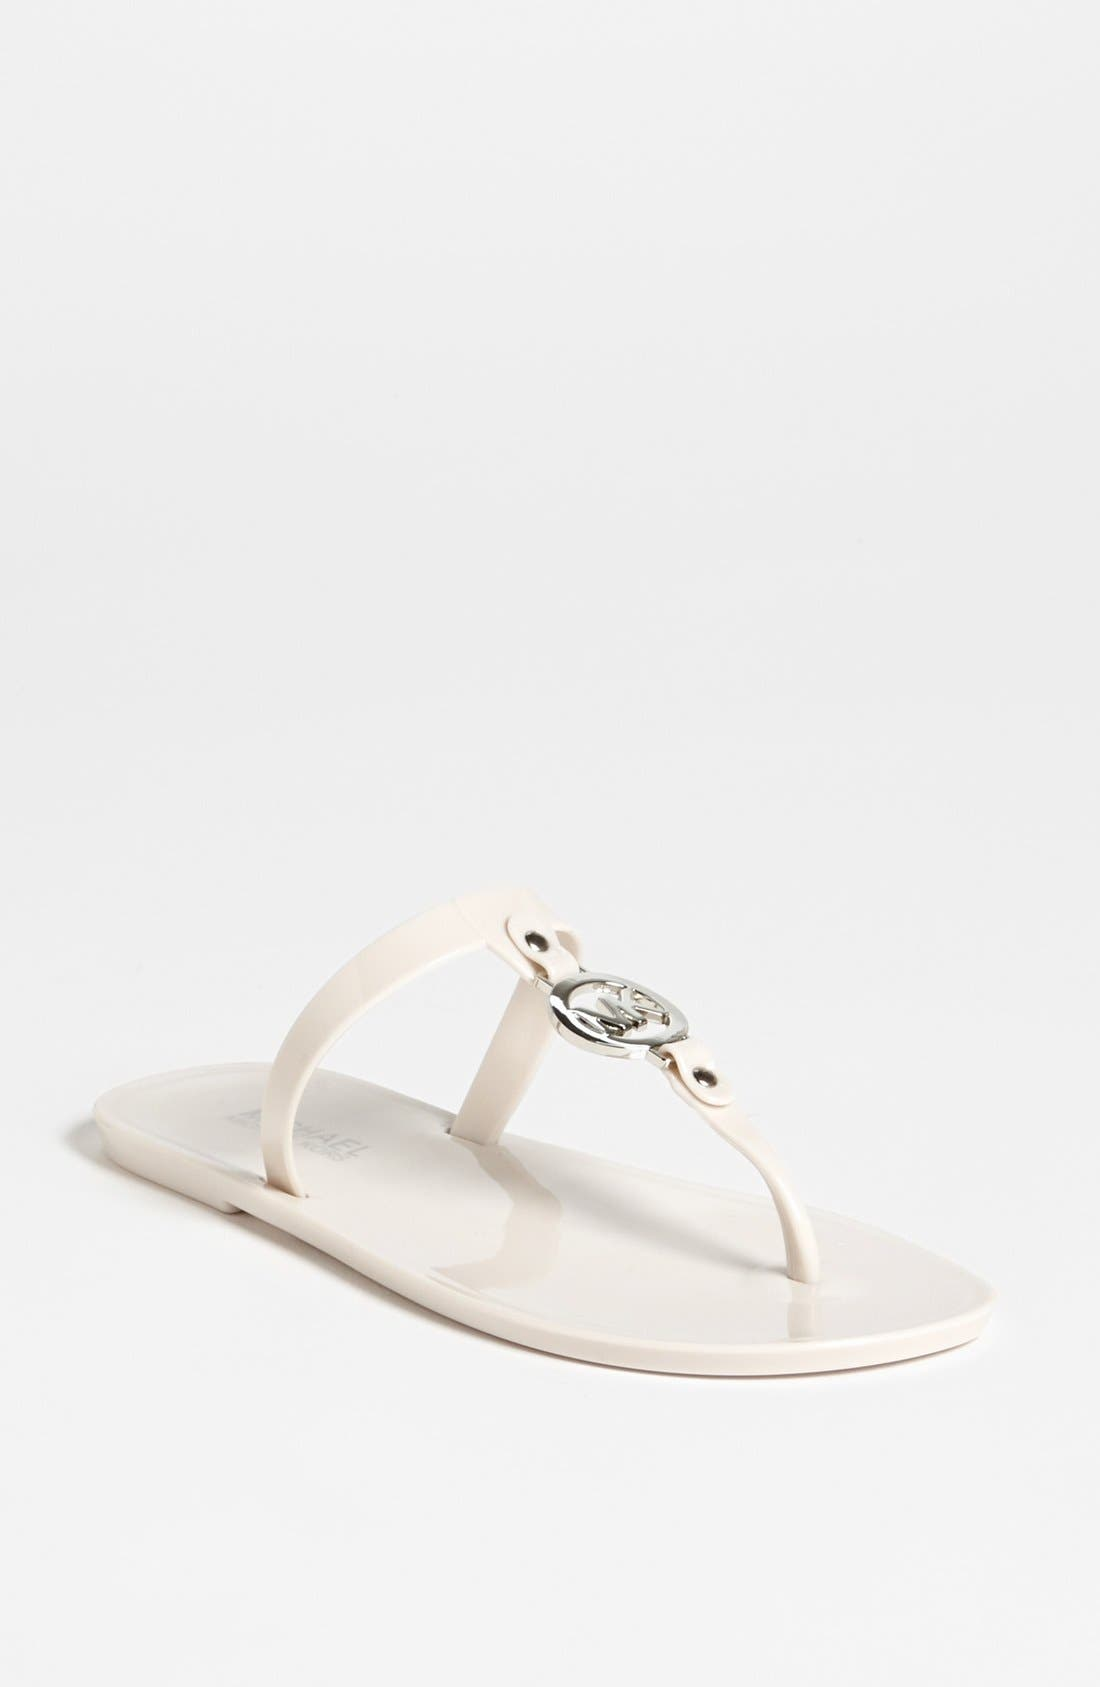 Alternate Image 1 Selected - MICHAEL Michael Kors 'Sondra' Jelly Sandal (Nordstrom Exclusive)